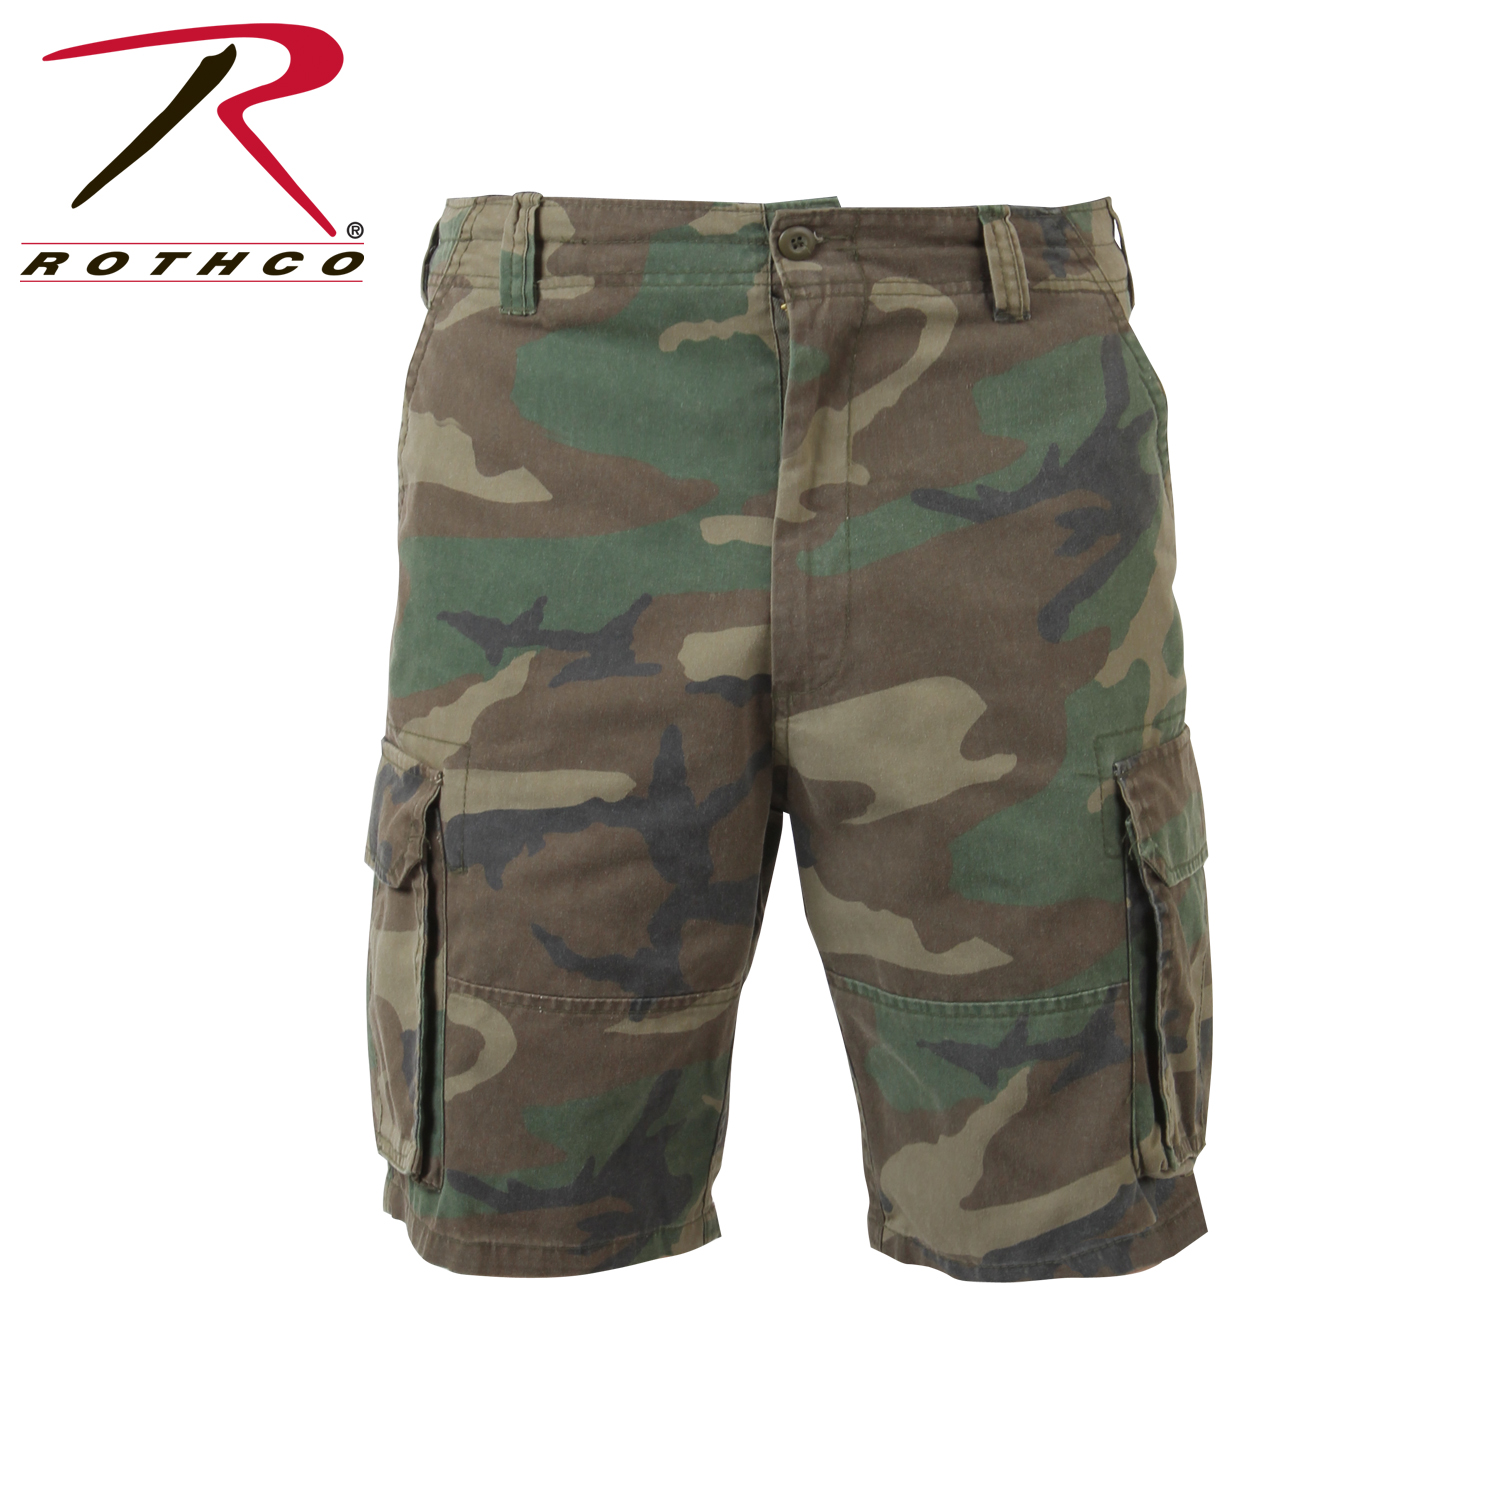 6616e5fb1d Loading zoom. rothco vintage short collection, paratrooper shorts ...